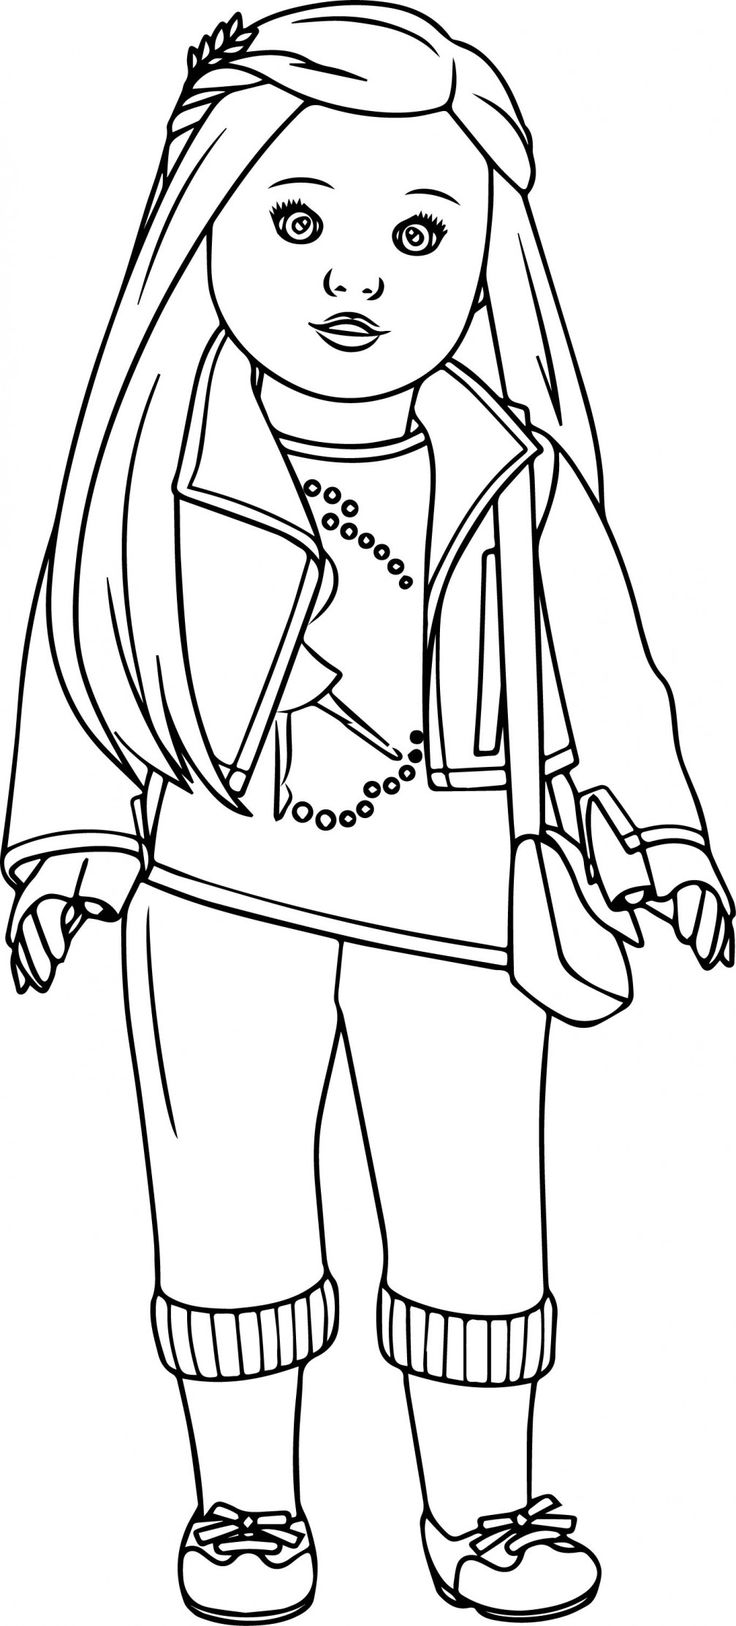 american girl doll coloring pages to print american girl doll free printables doll american print to coloring girl pages